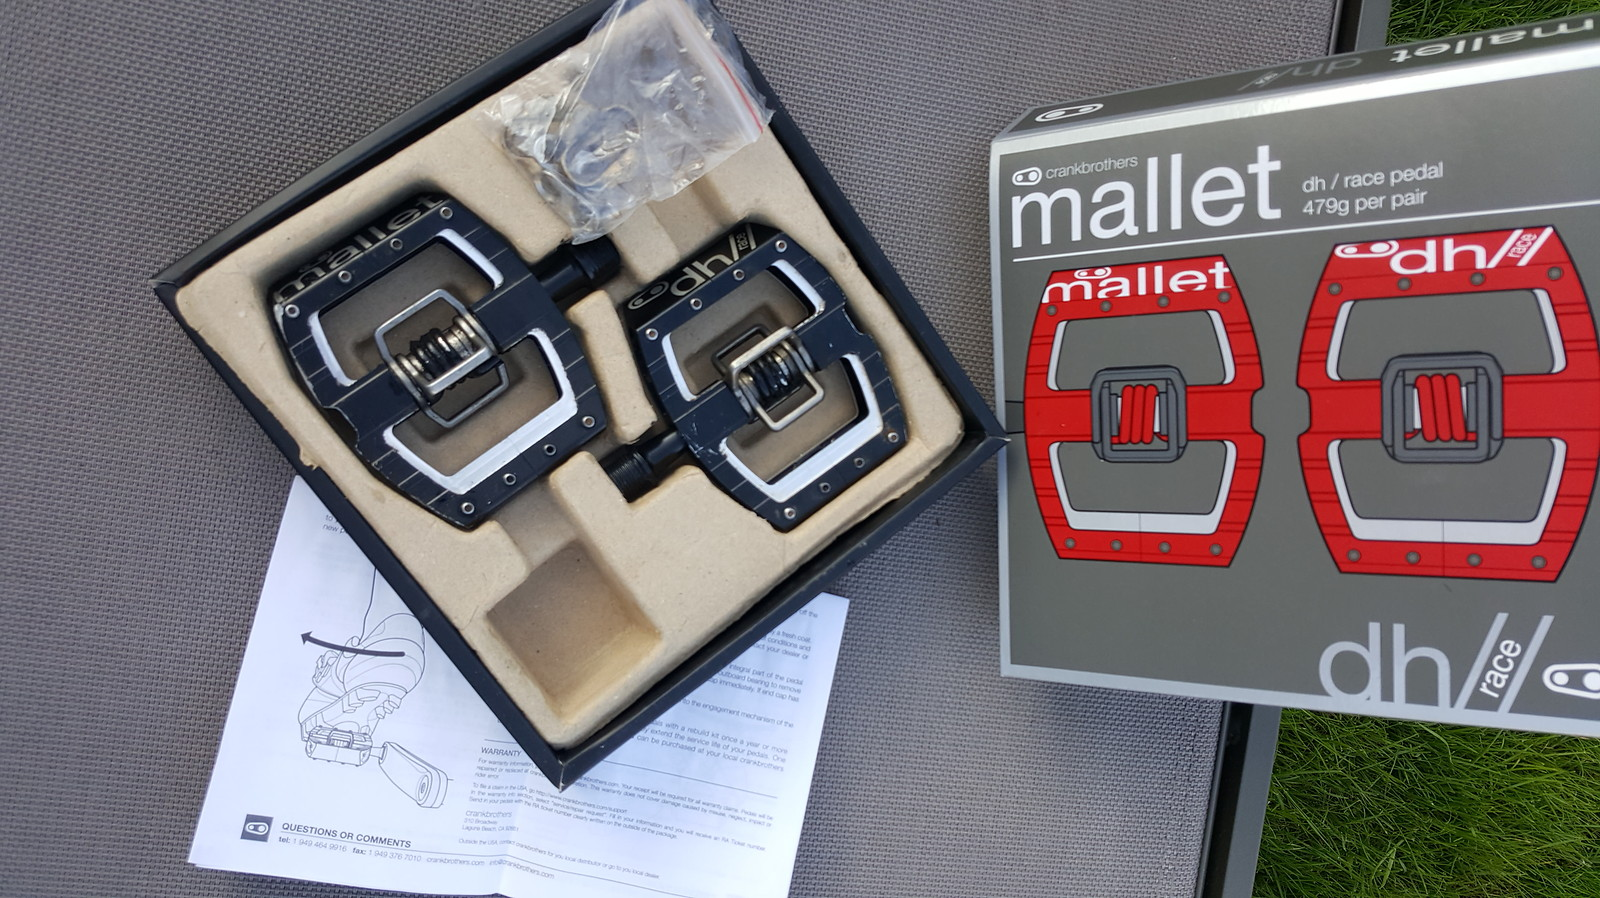 Crankbrothers mallet dh race